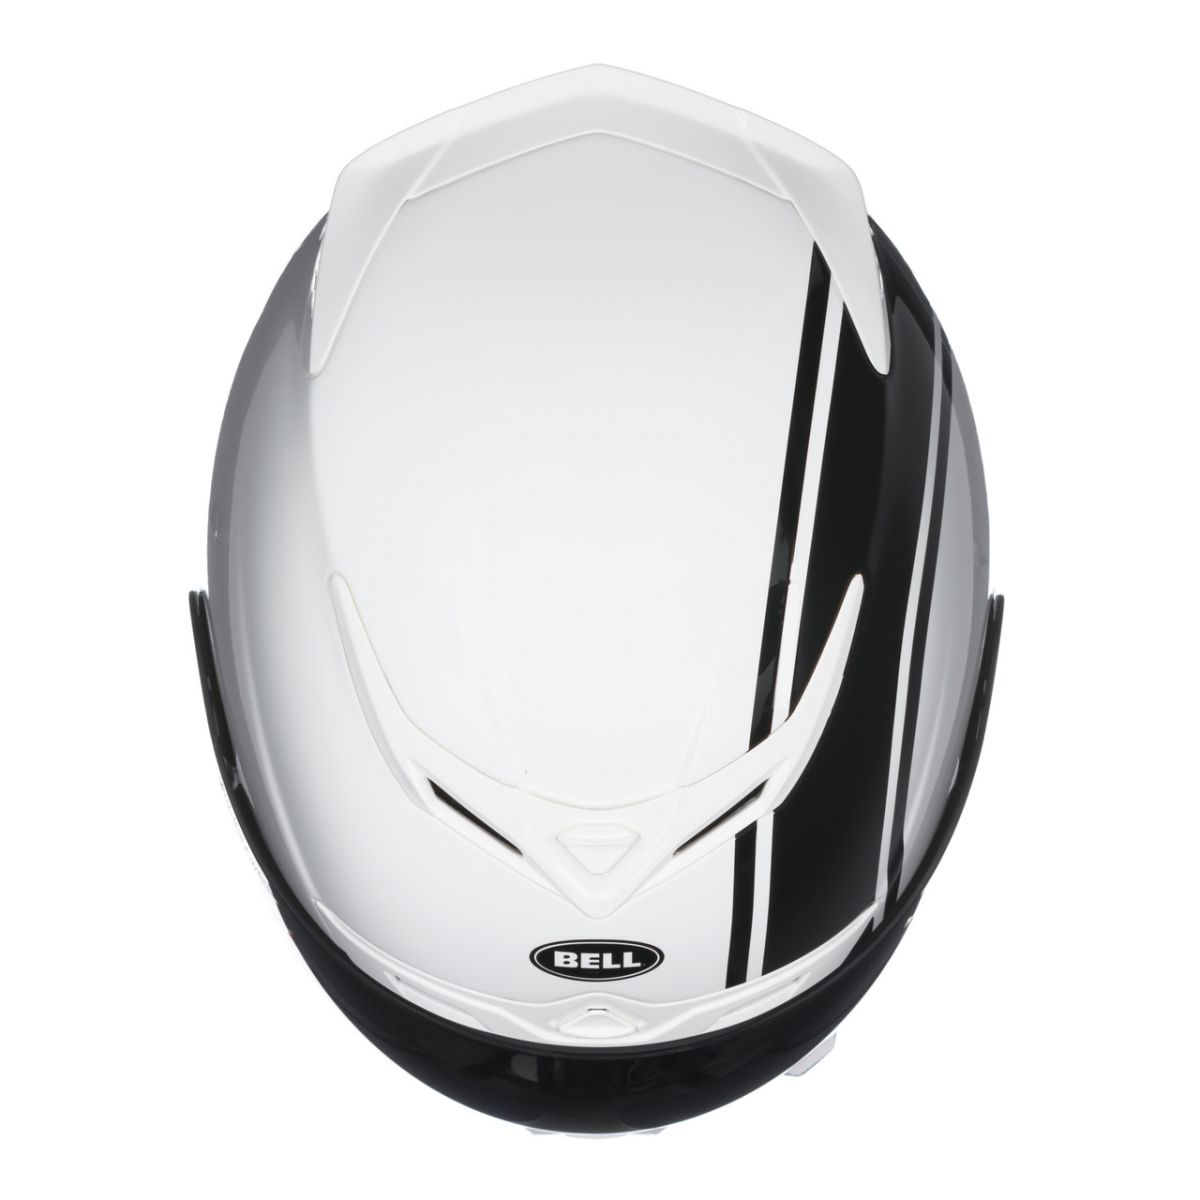 Capacete Bell RS-1 Linear Pearl White Bi-Composto (RS1) com Vídeo - Super Bike - Loja Oficial Alpinestars